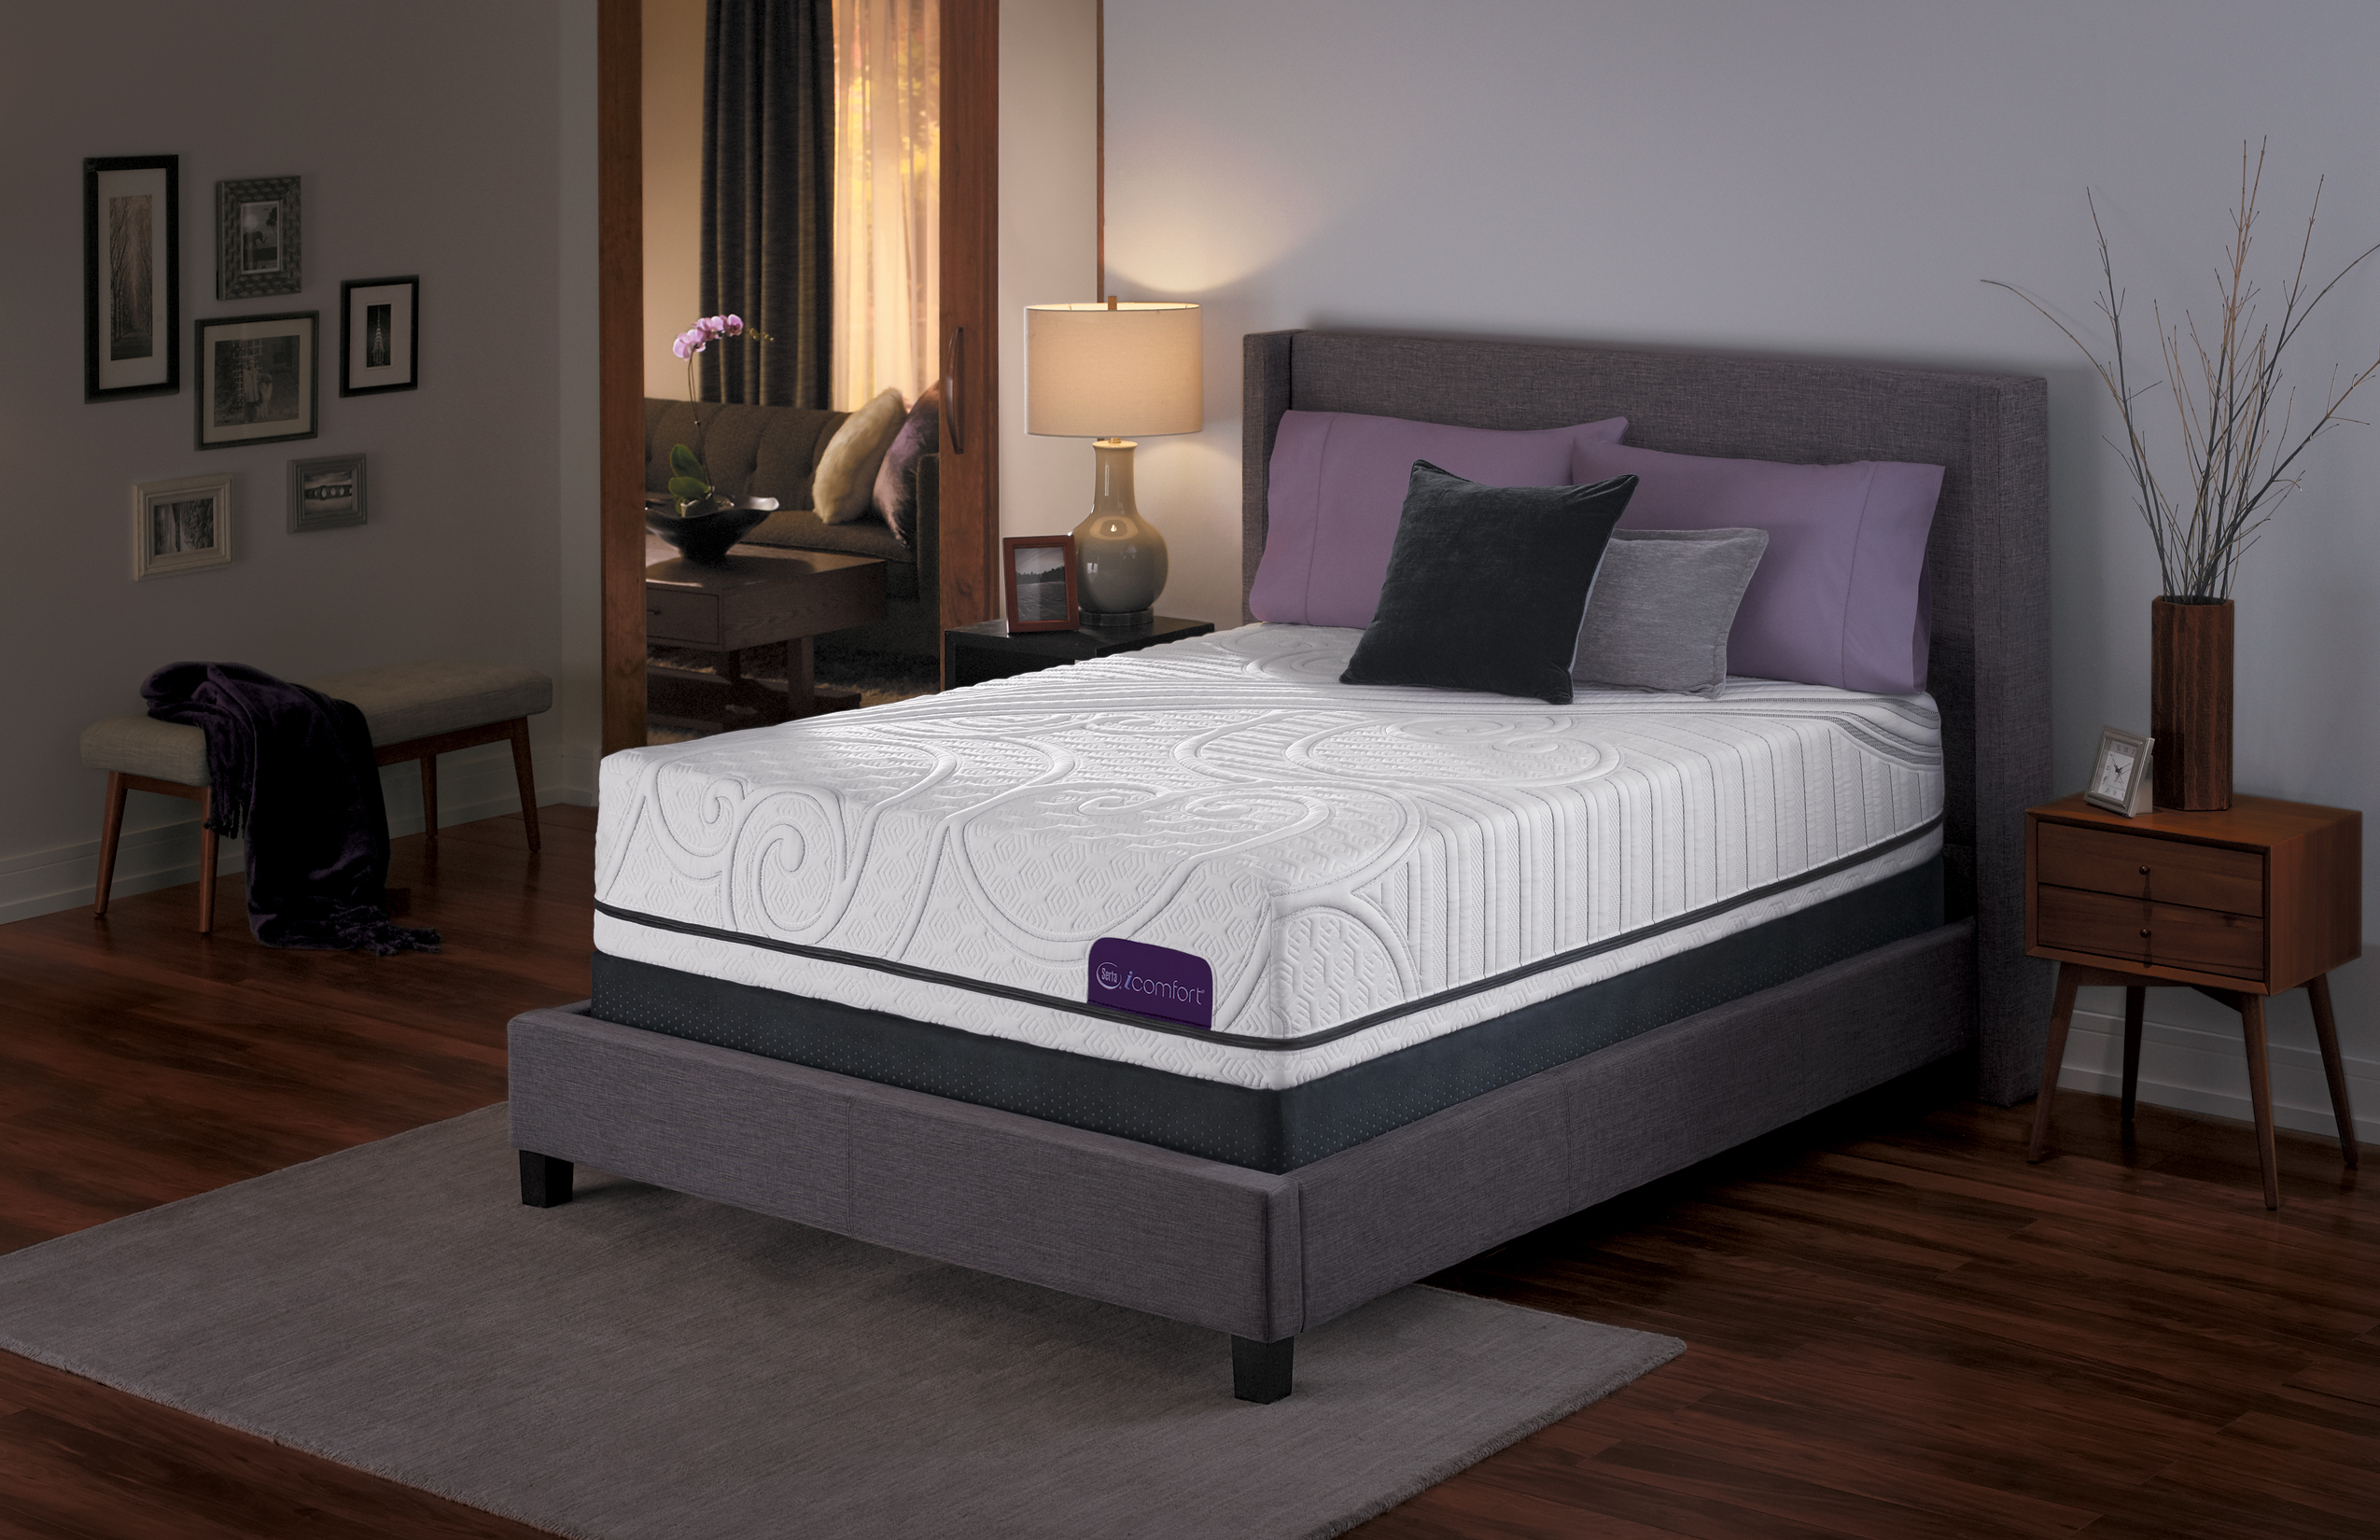 sleep geekz mattress store coupons near me in jacksonville 8coupons. Black Bedroom Furniture Sets. Home Design Ideas